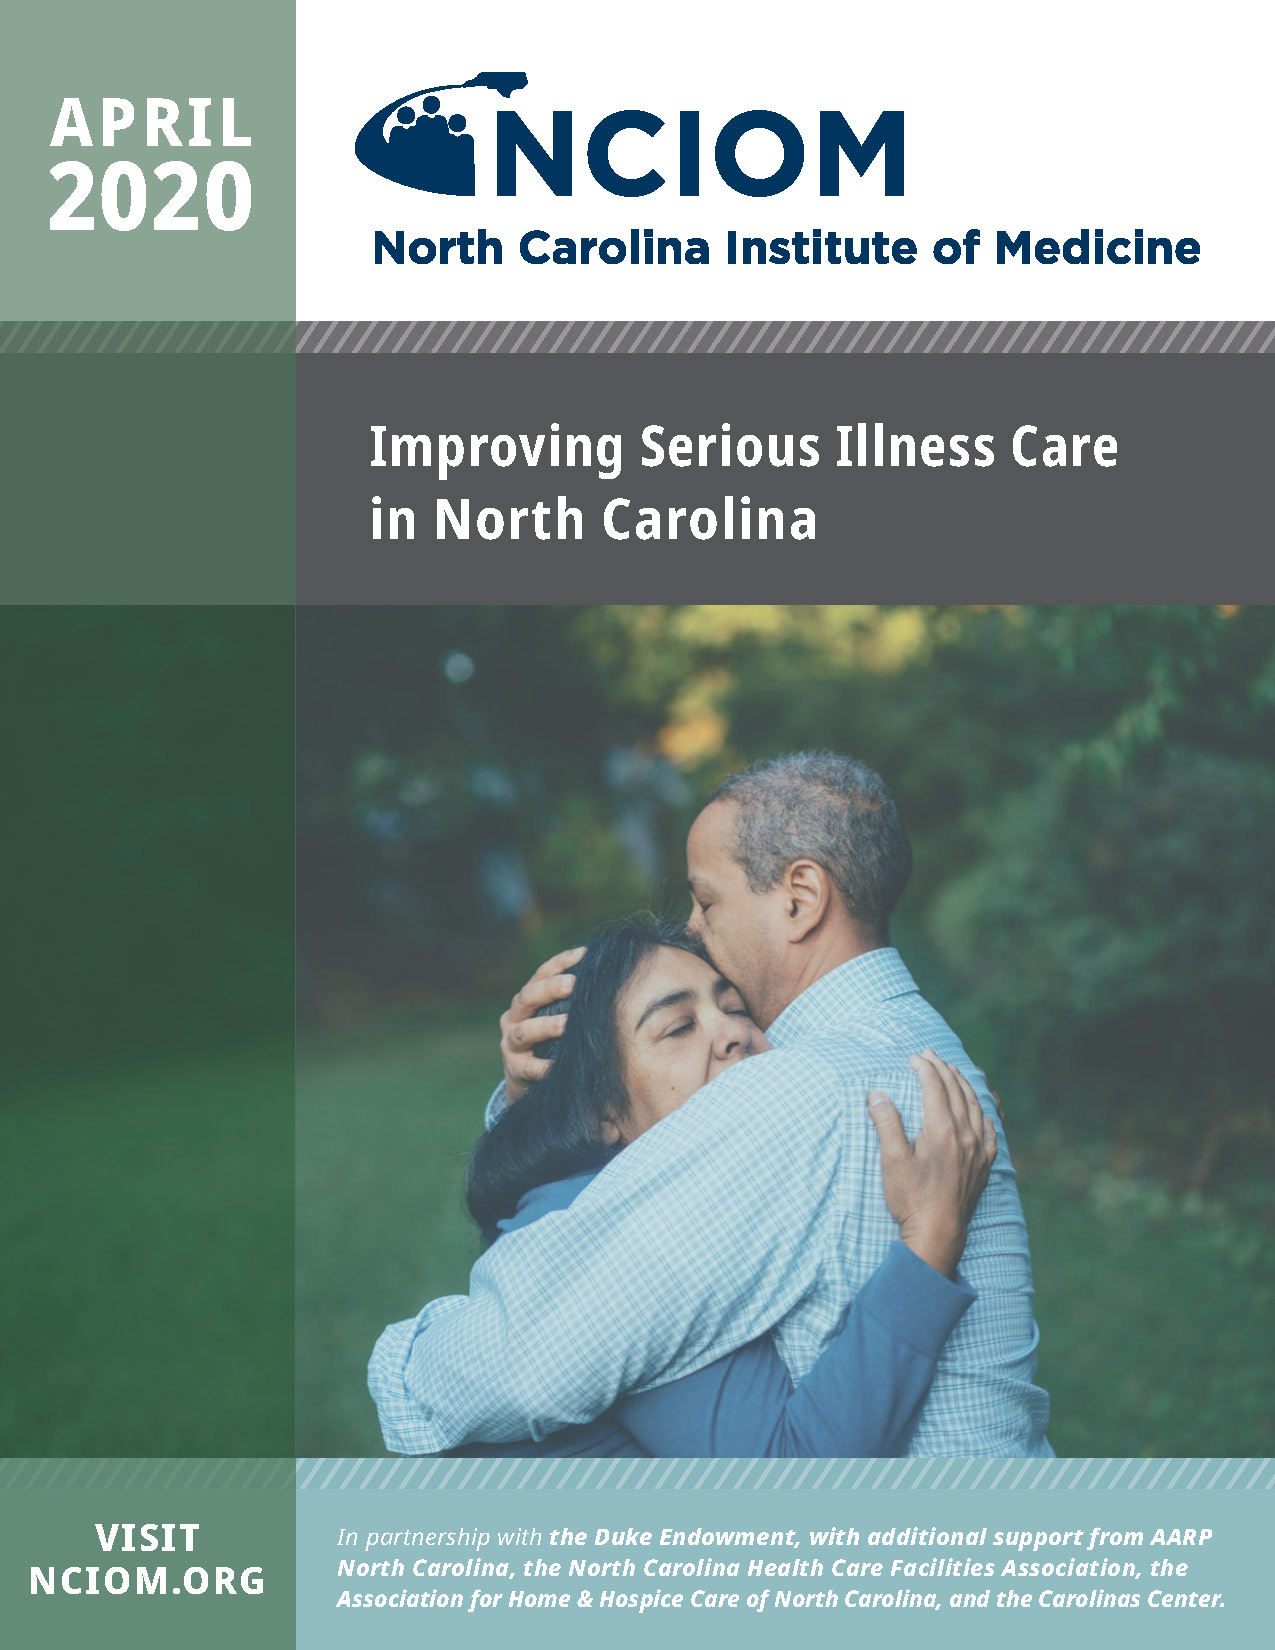 Improving Serious Illness Care in North Carolina